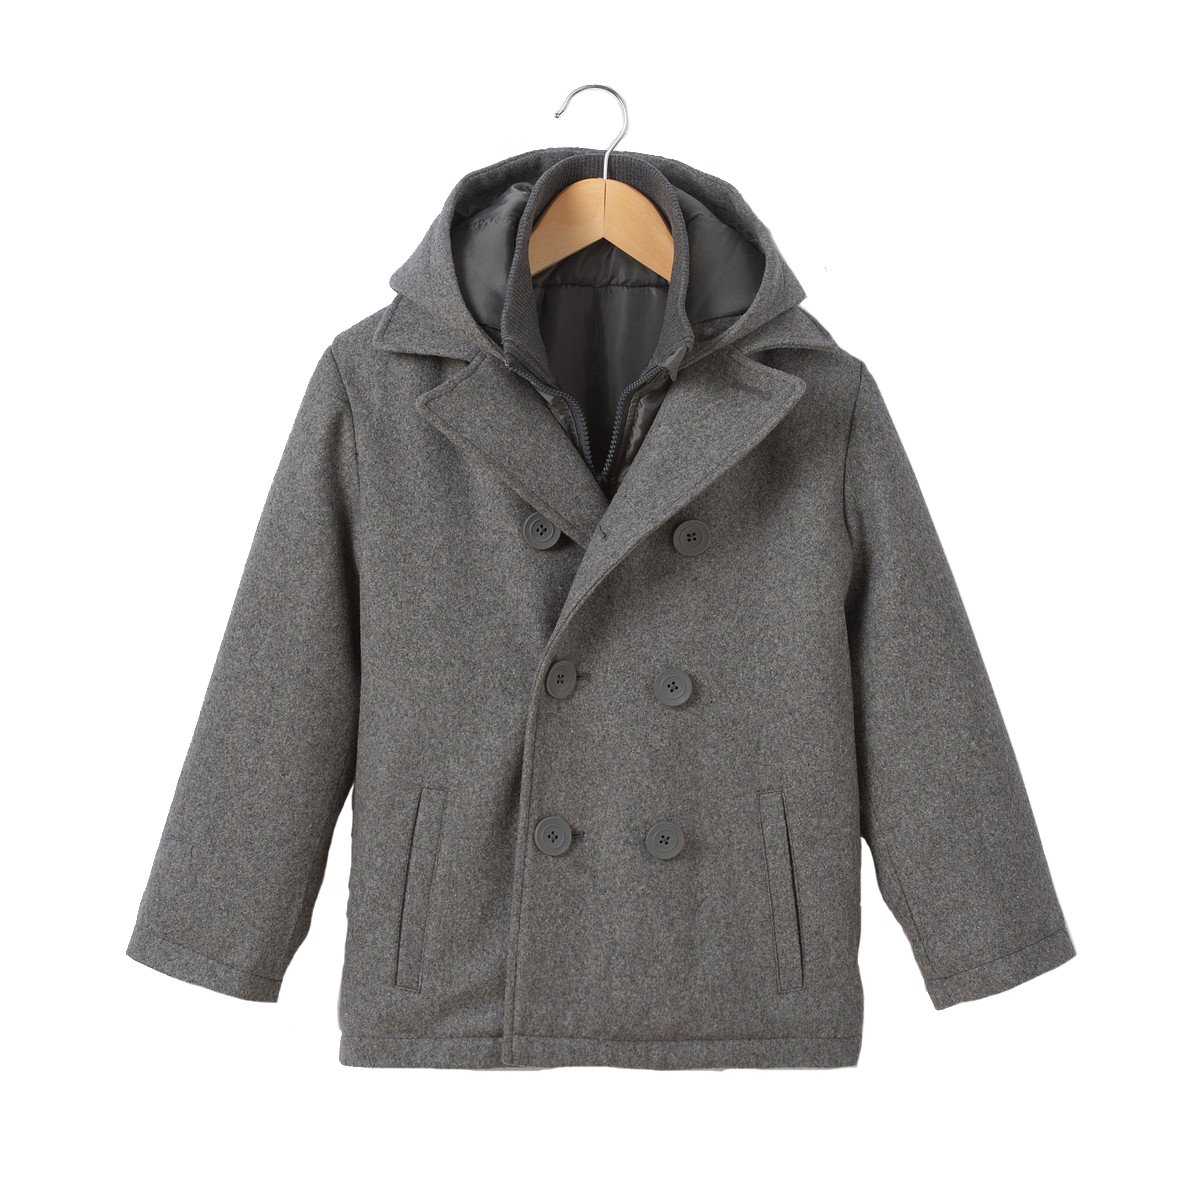 La Redoute Collections Big Boys Wool Mix Pea Coat, 3-12 Years Grey Size 12 Years - 59 in. 5903734-000-9046917-00150-1